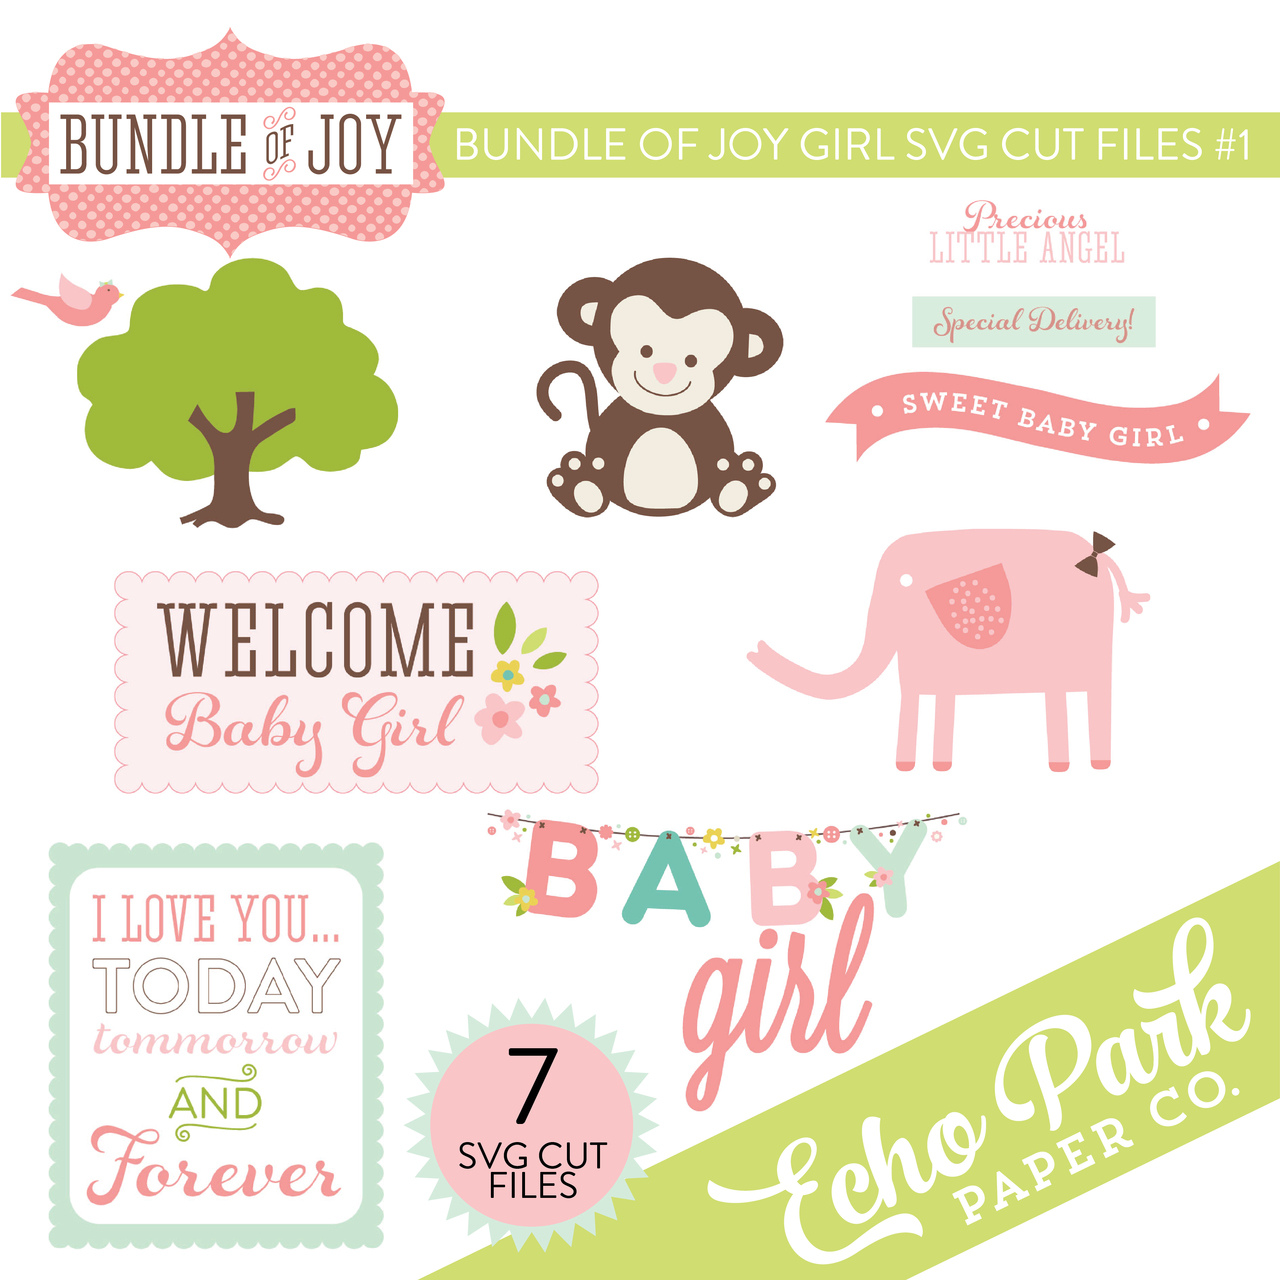 Bundle of Joy - Girl SVG Cut Files #1